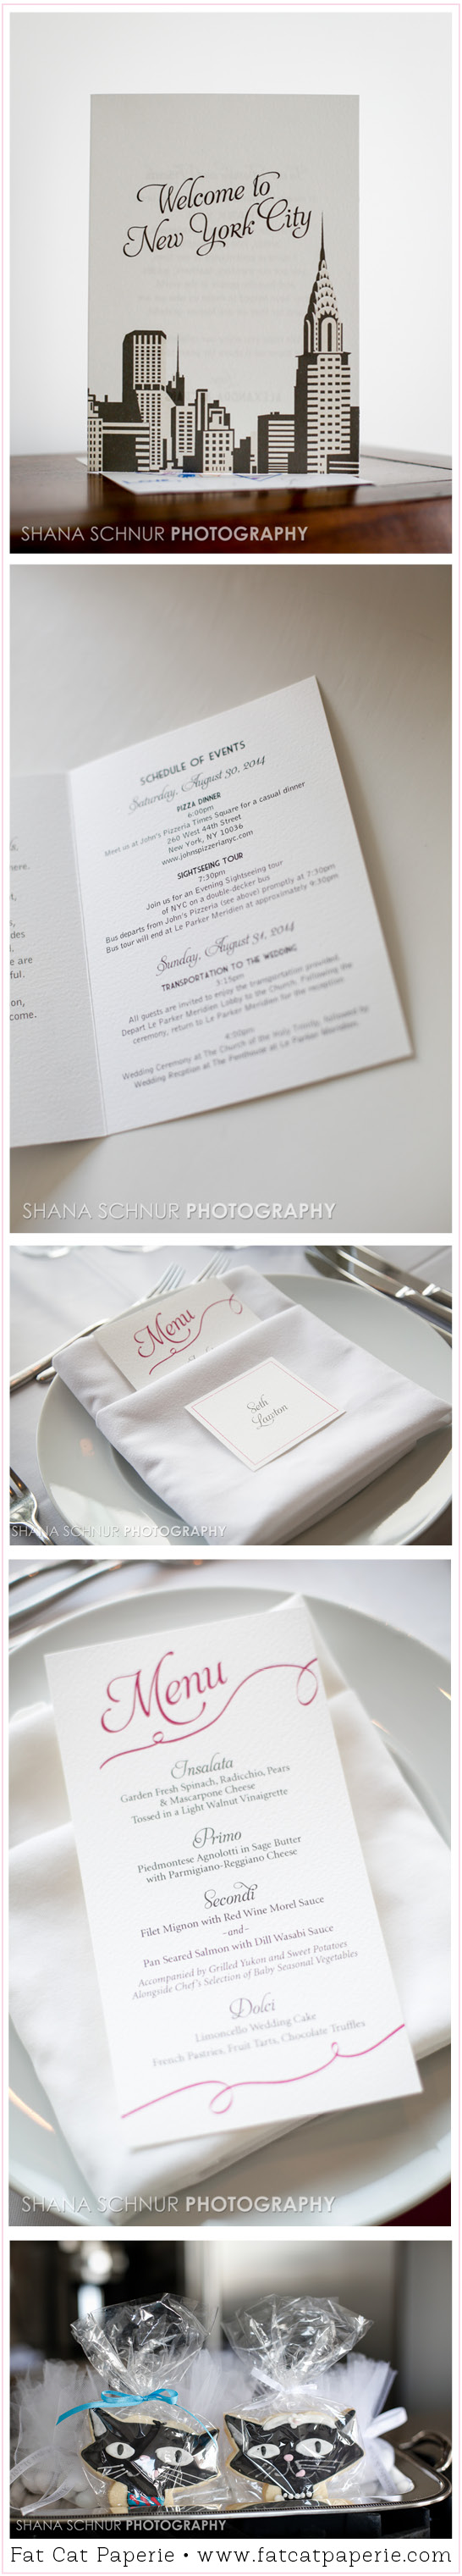 Real Wedding: Alexandra and Craig, Day-of Stationery and Accessories